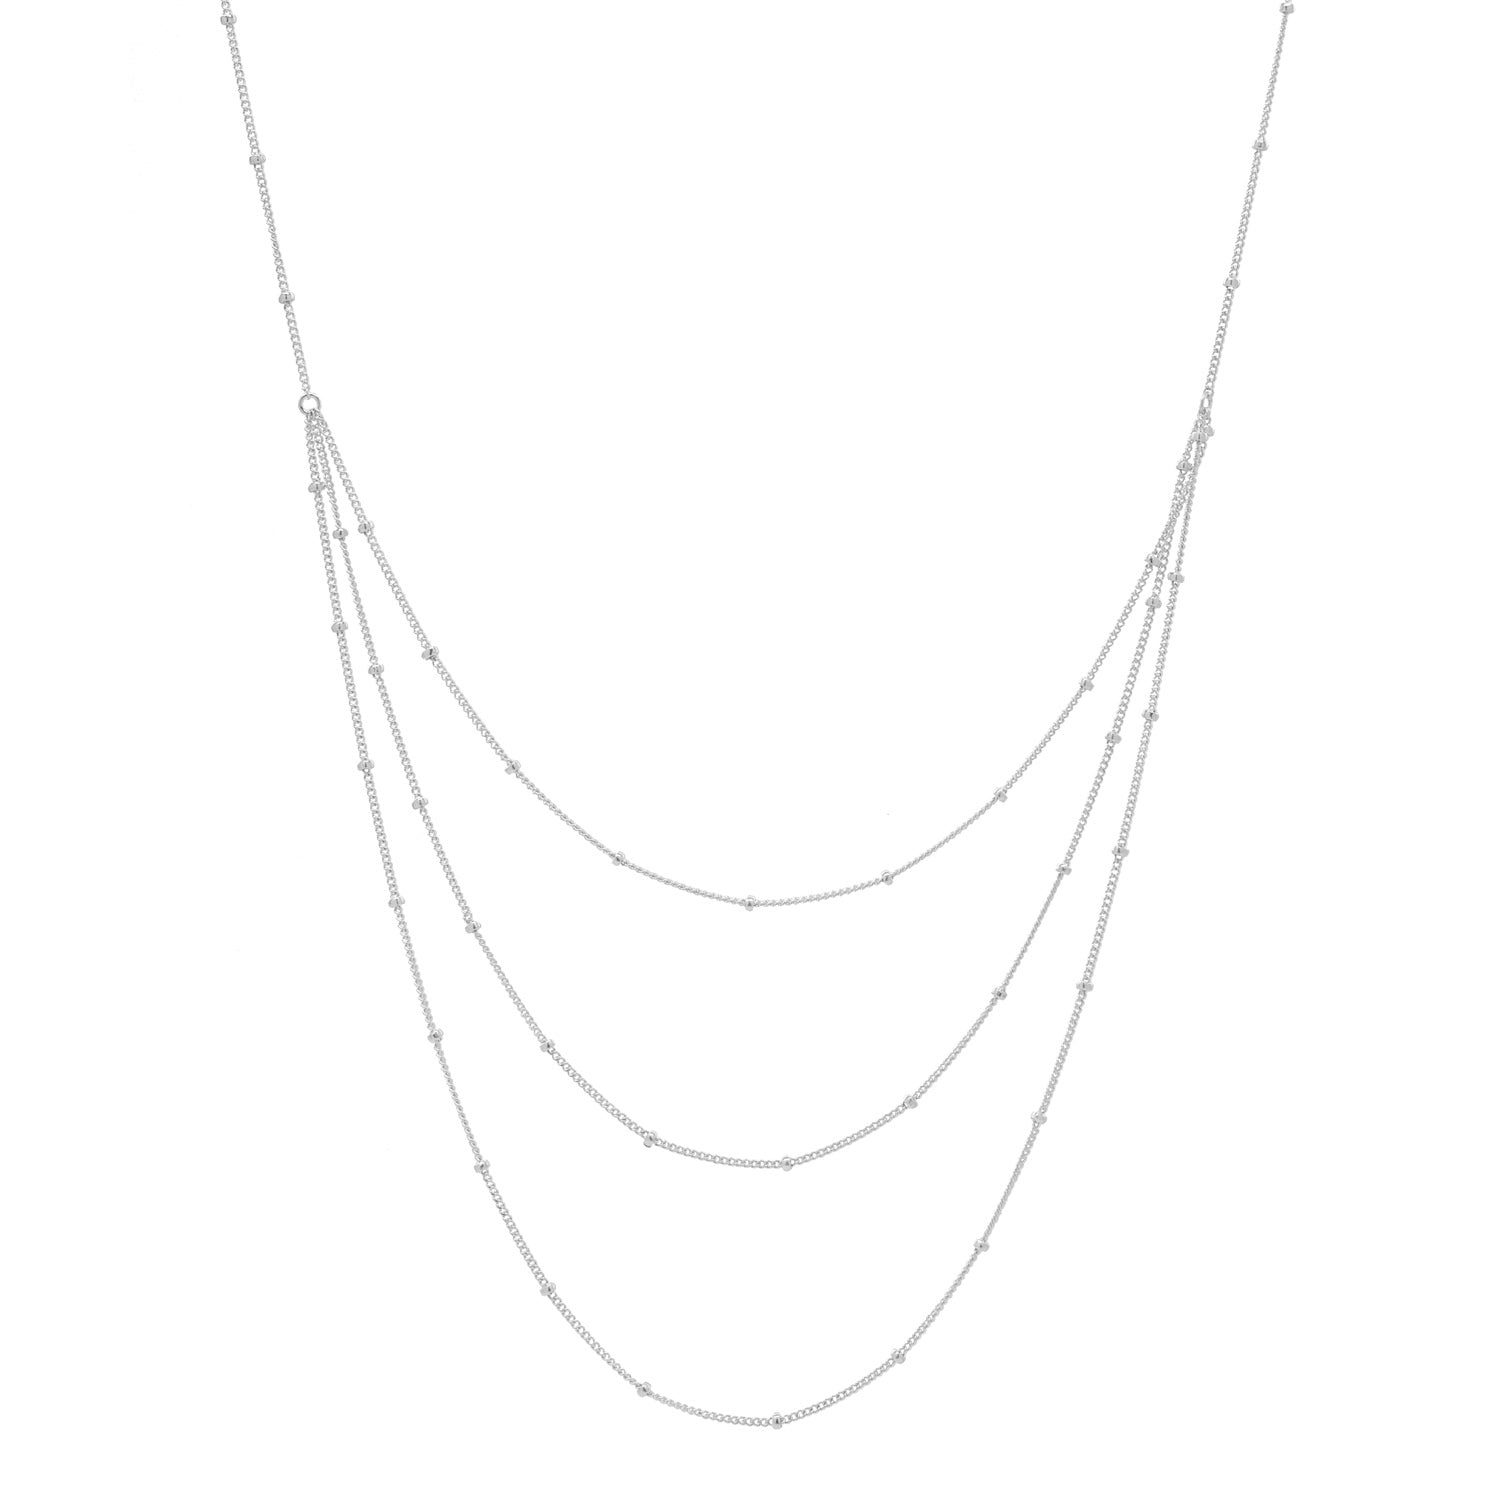 Triple Layer Ball Chain Necklace